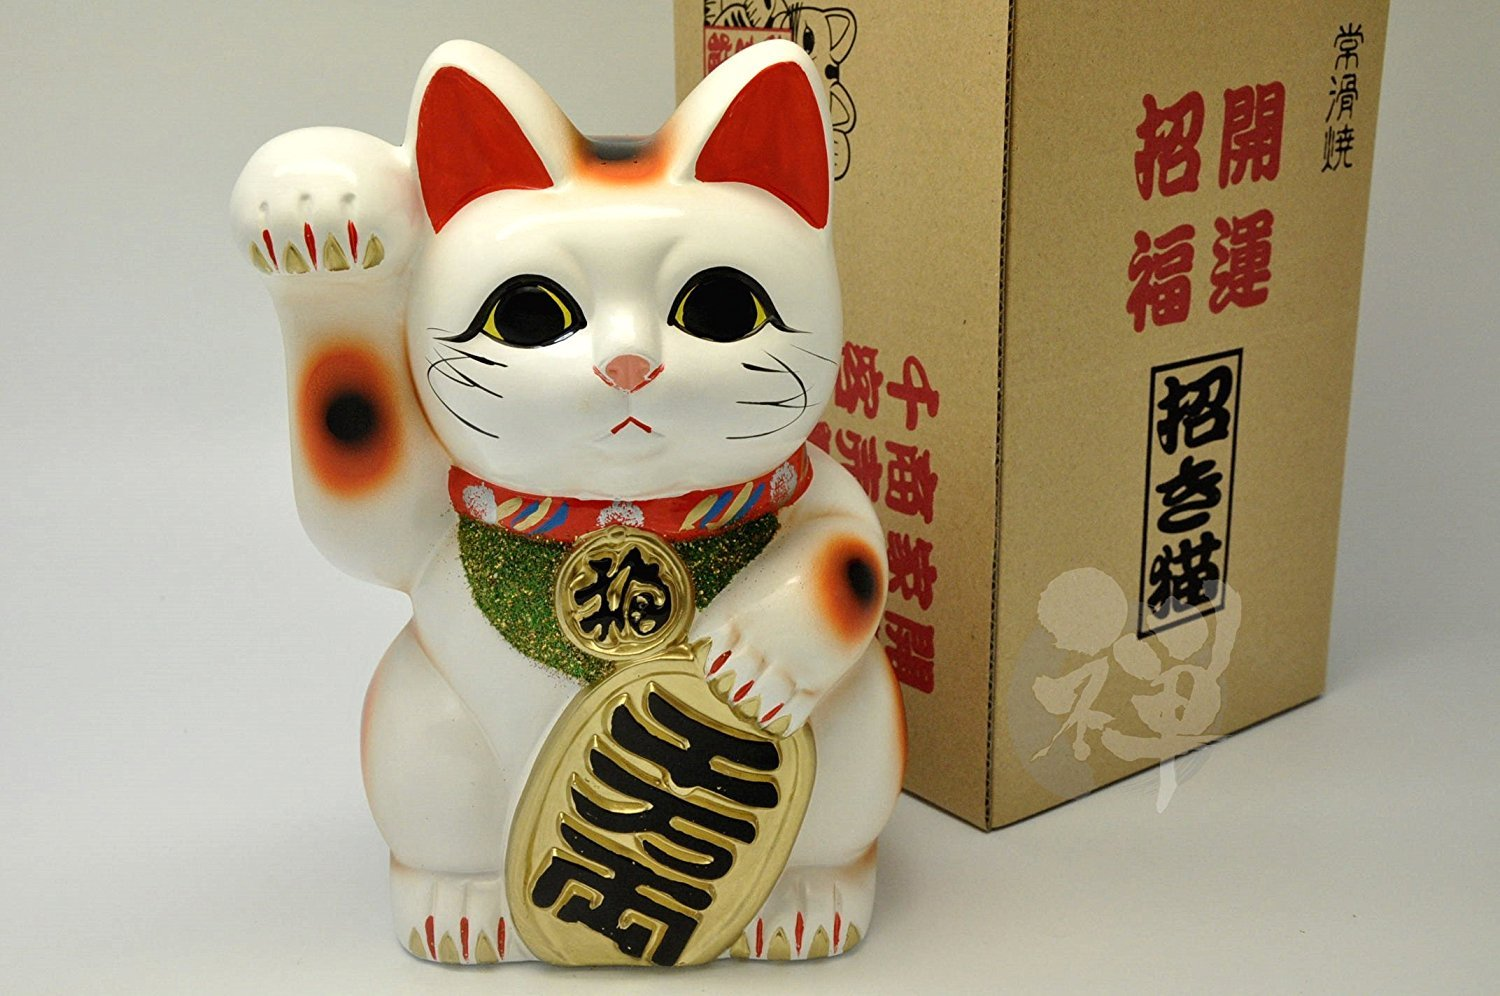 Japanease Lucky Cat Right hand Maneki Neko koban 9.1inch (6605) by zenjapanstyle